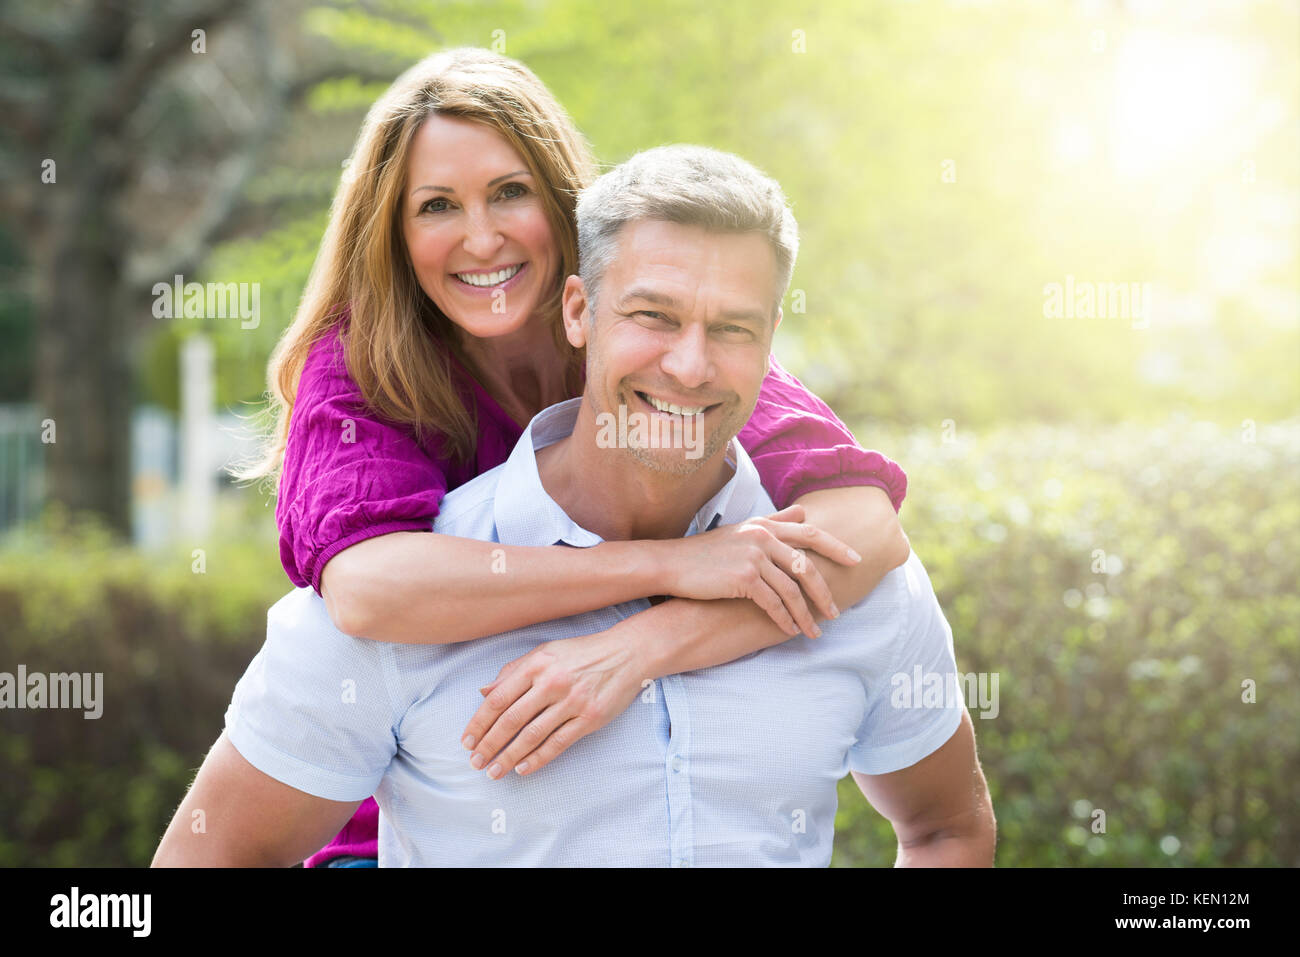 Portrait Of Happy Woman Embracing Her Husband From Behind - Stock Image